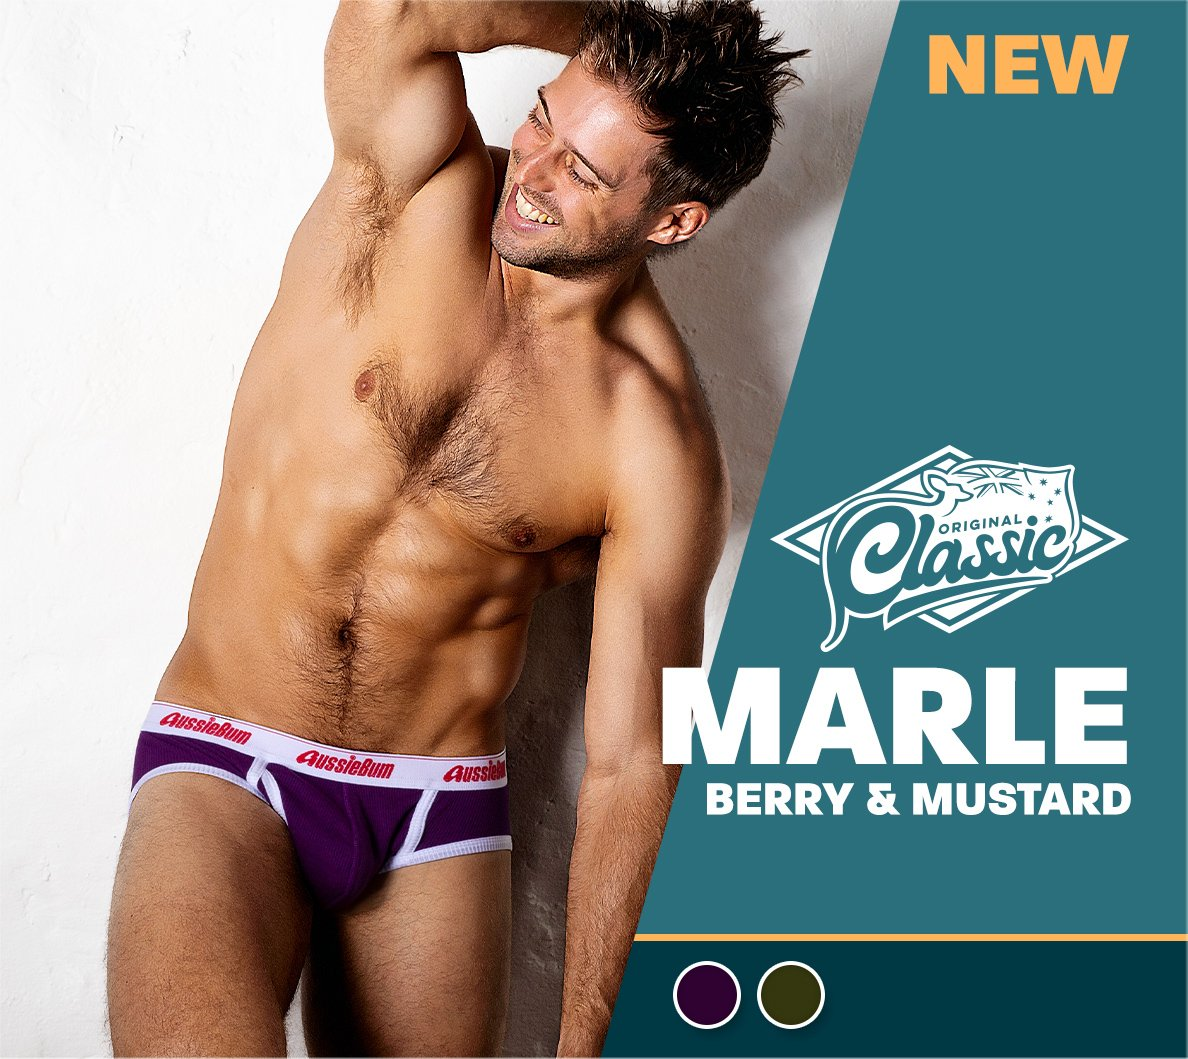 Classic Original Berry Marle Homepage Image